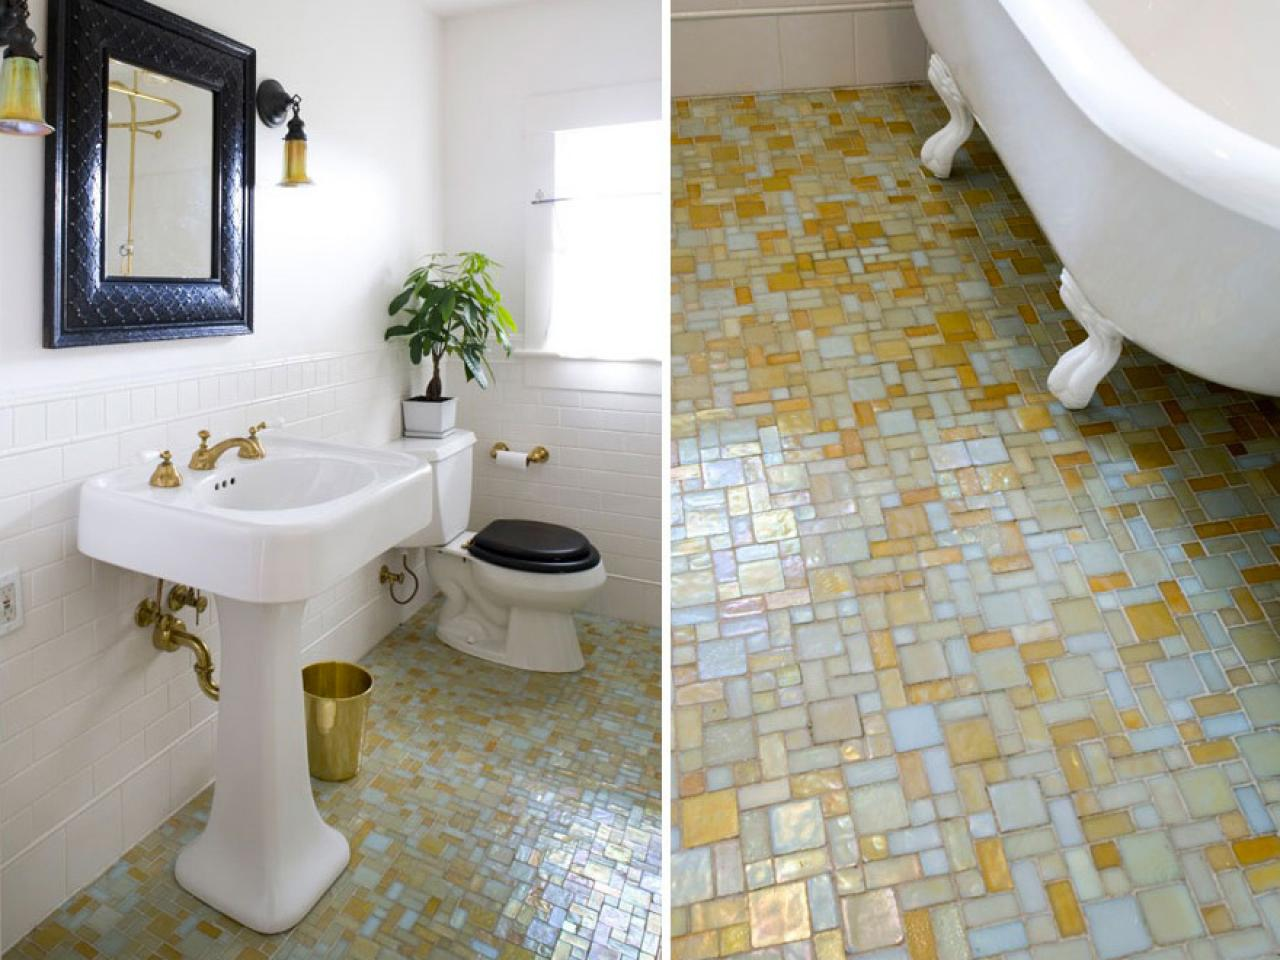 Floor Tiles Lifting In Bathroom : Bold bathroom tile designs hgtv s decorating design